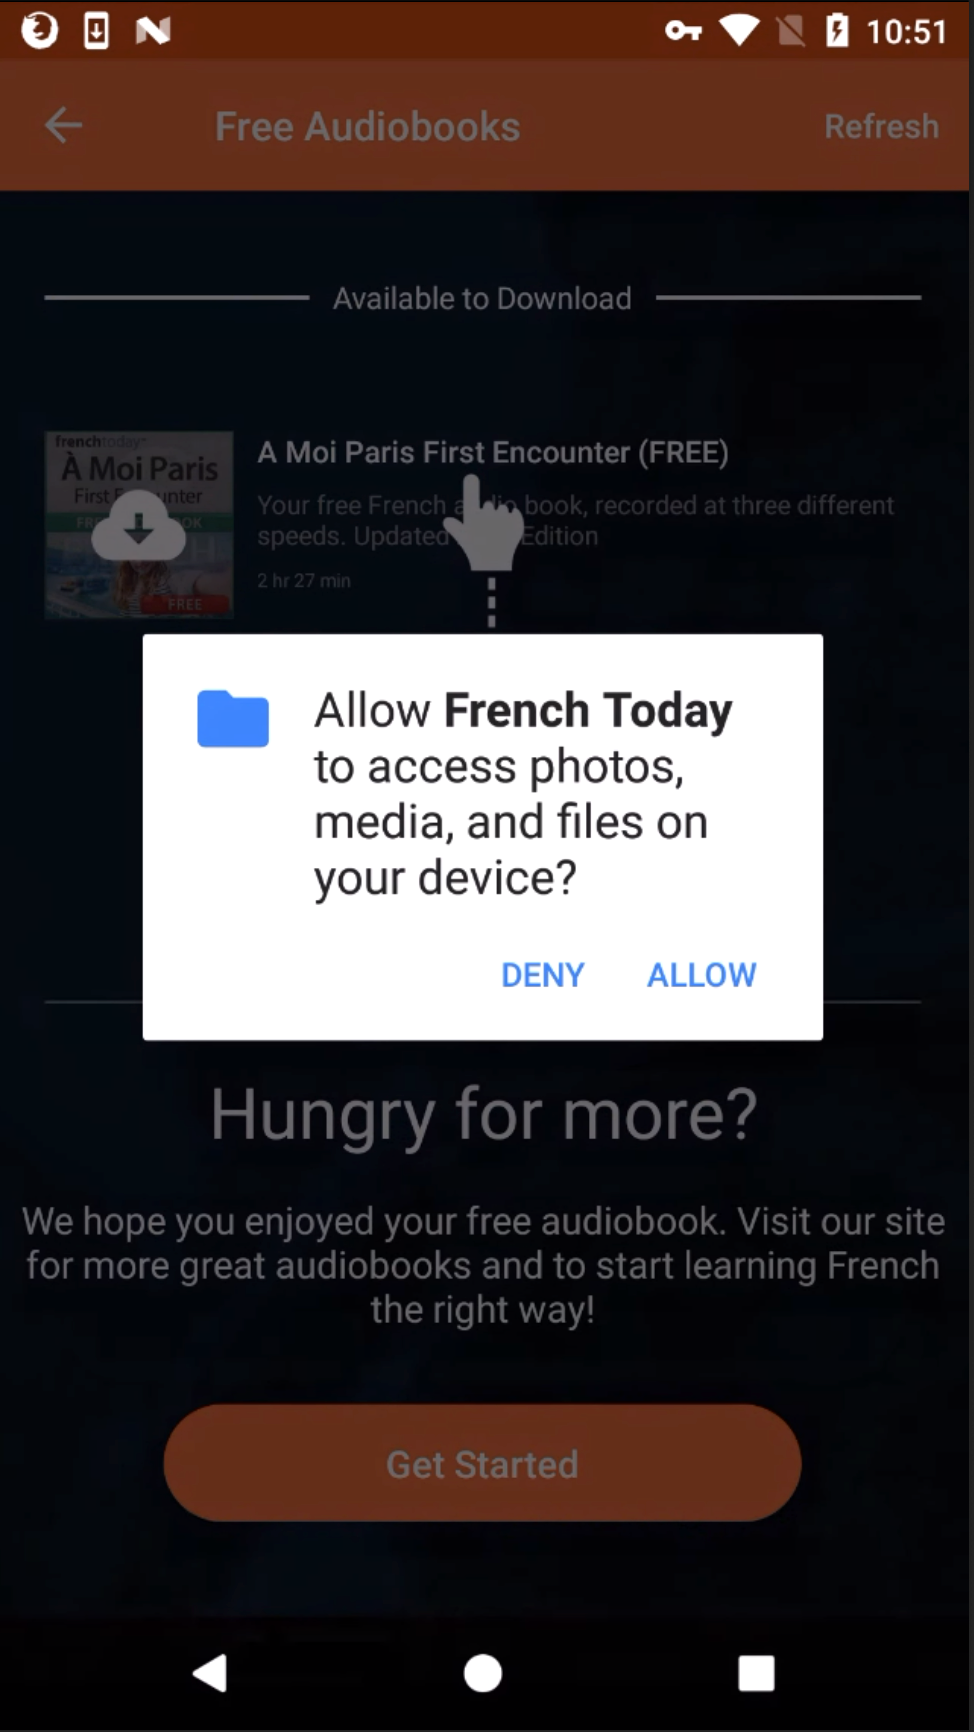 Why Does the Android App Asks Me For Media Access? - French